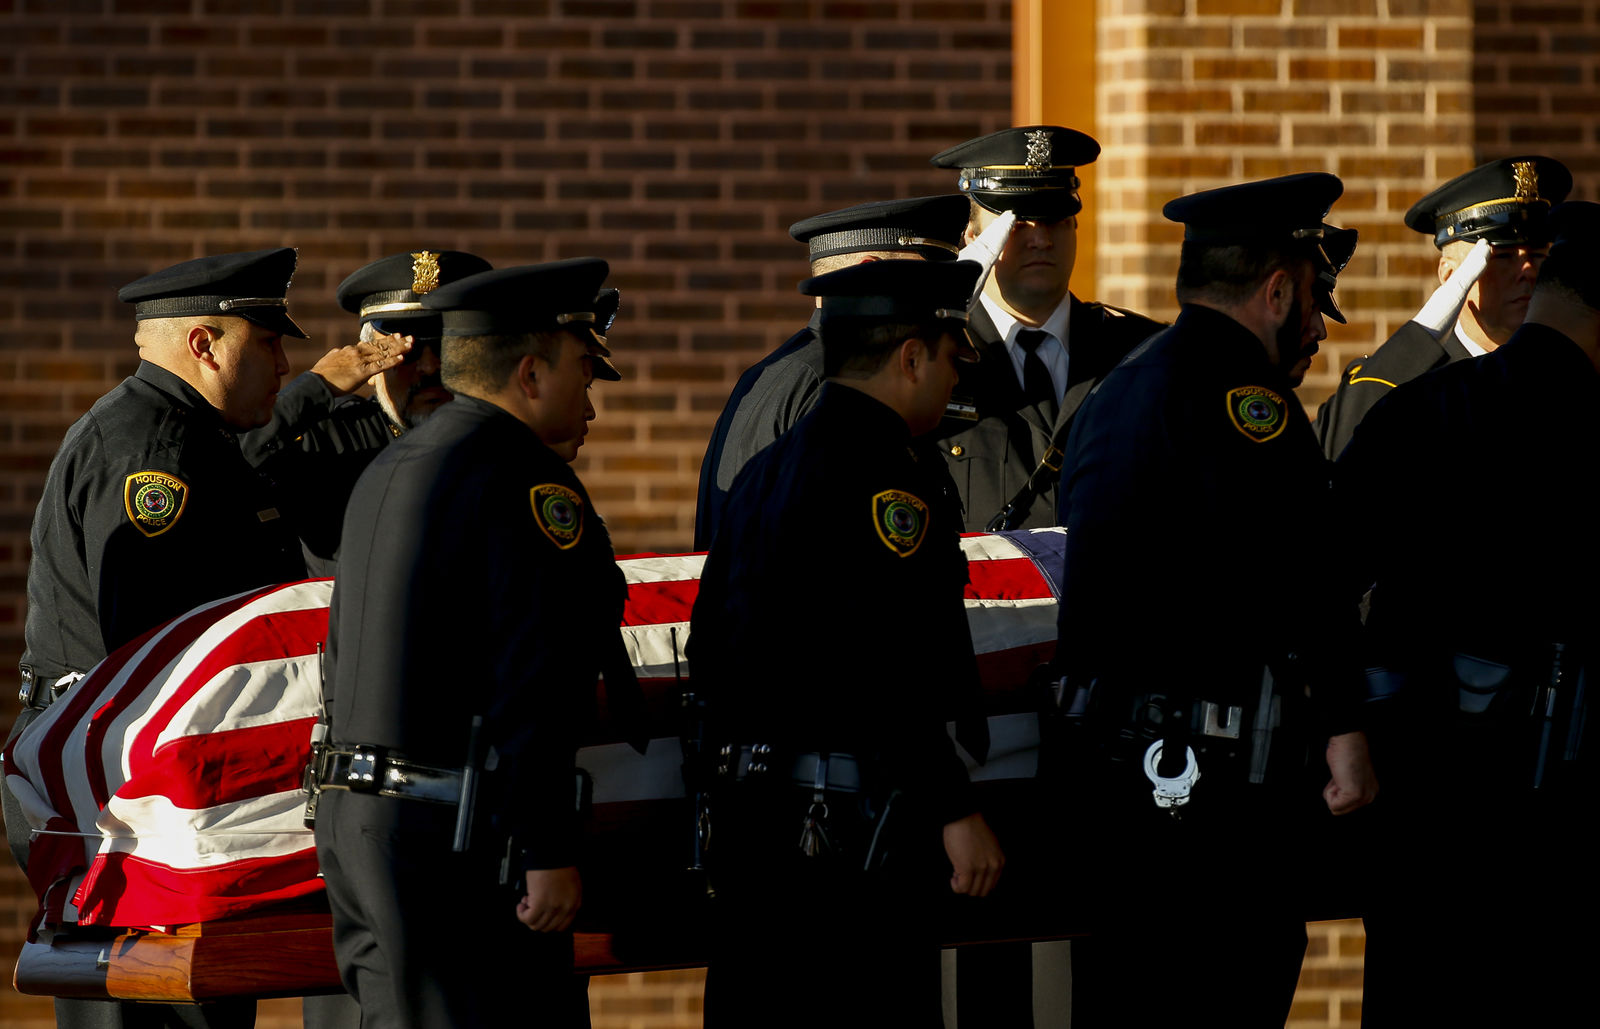 Pallbearers carry the casket of Houston Police Sgt. Christopher Brewster, Thursday, Dec. 12, 2019, at Grace Church Houston in Houston. Brewster, 32, was gunned down Saturday evening, Dec. 7, while responding to a domestic violence call in Magnolia Park. Police arrested 25-year-old Arturo Solis that night in the shooting death. Solis faces capital murder charges. (Godofredo A. Vásquez/Houston Chronicle via AP)